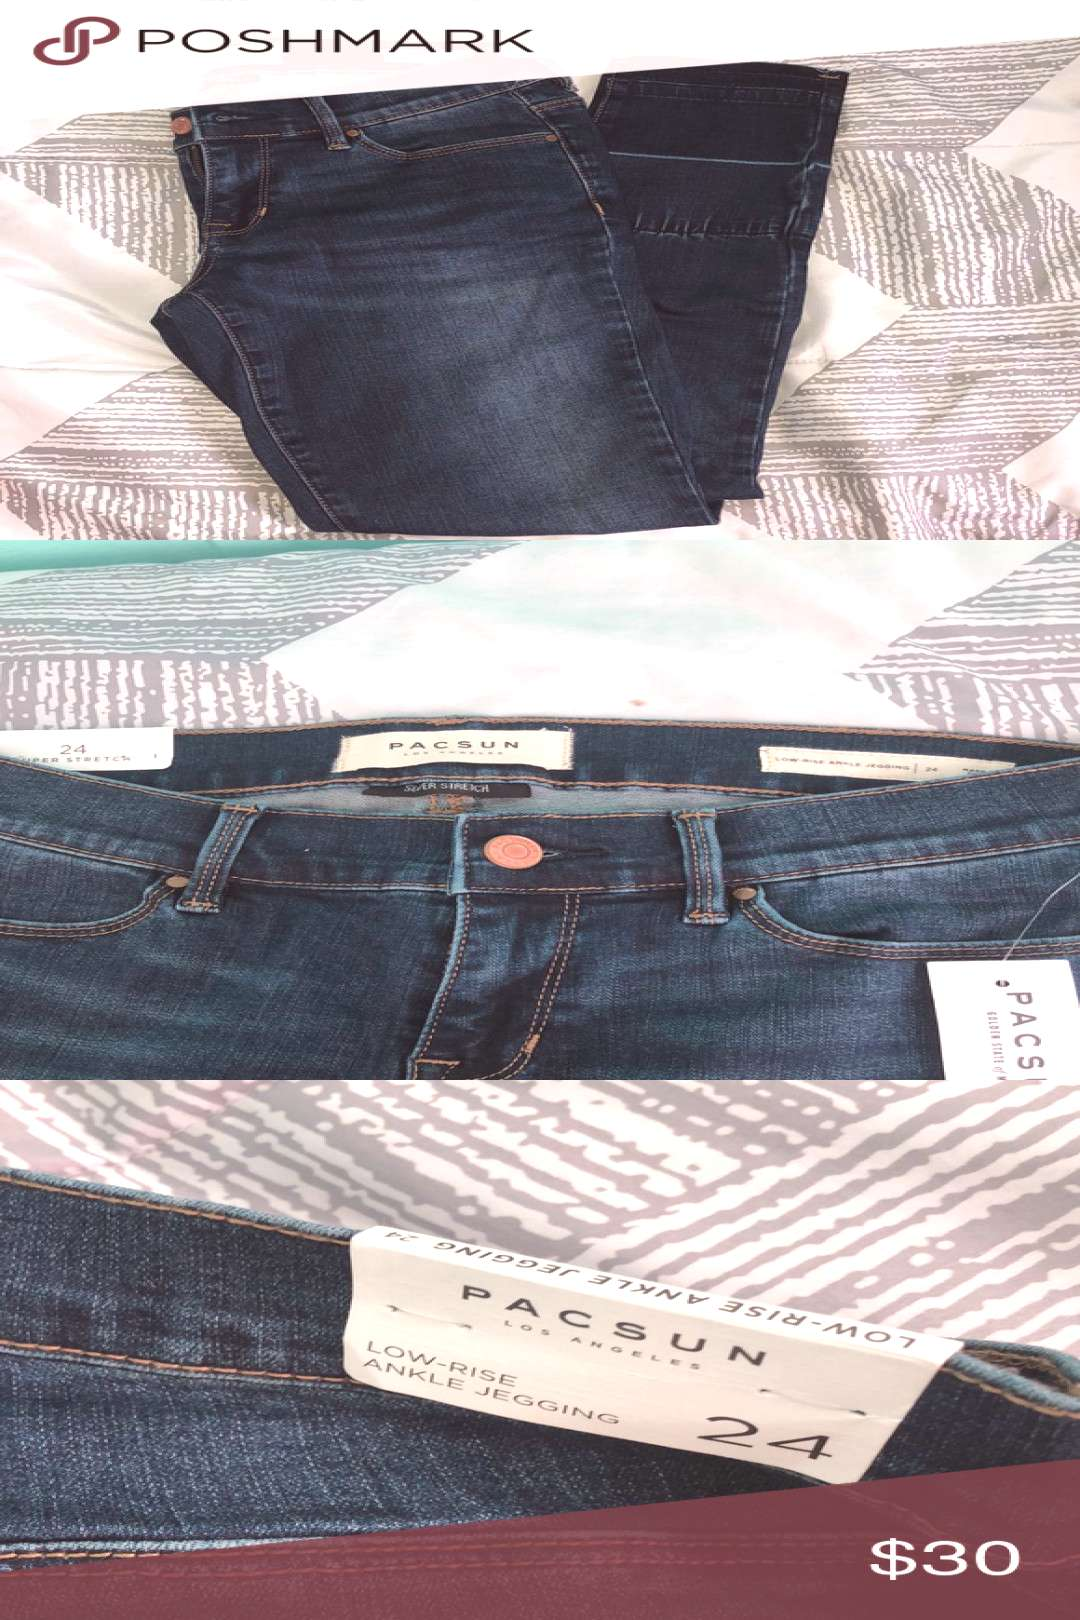 I just added this listing on Poshmark *NEW W/ TAGS* Blue Pacsun Jeans.